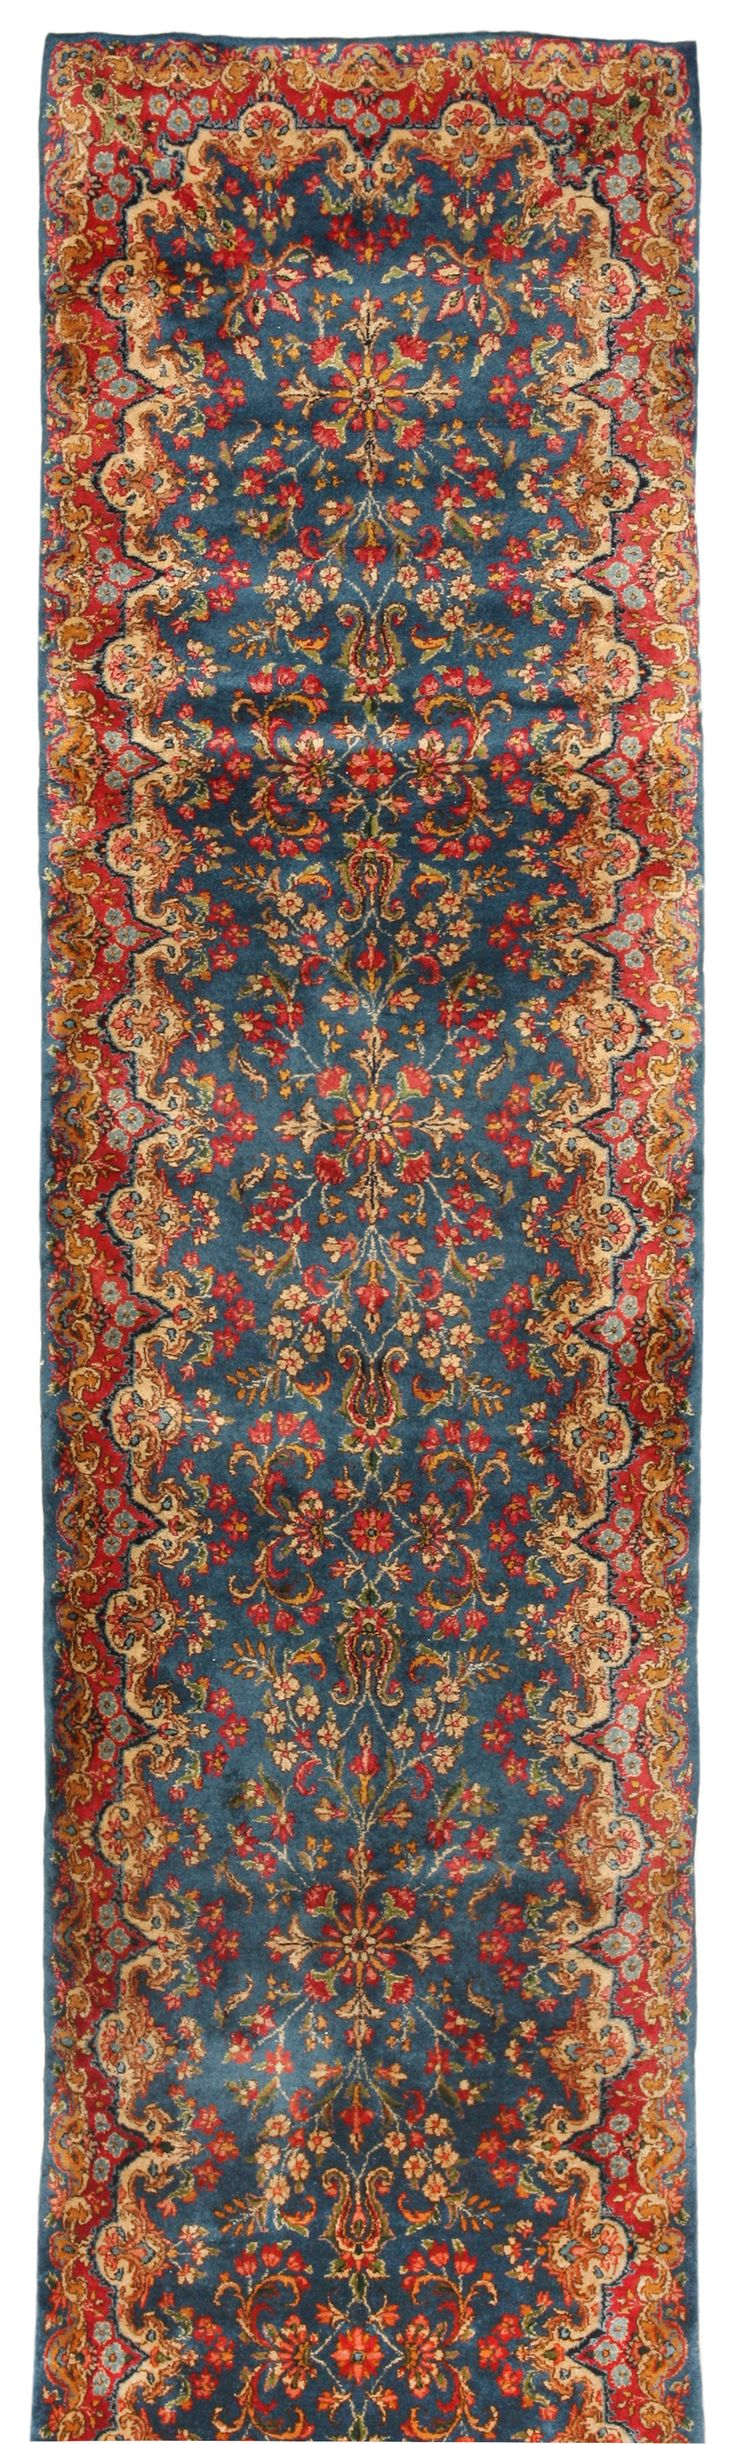 "Iranian carpet,antique-persian-kerman (Kerman carpets (sometimes ""Kirman"") are one of the traditional classifications of Persian carpets. They are named after Kerman, which is both a city and a province located in south central Iran)"